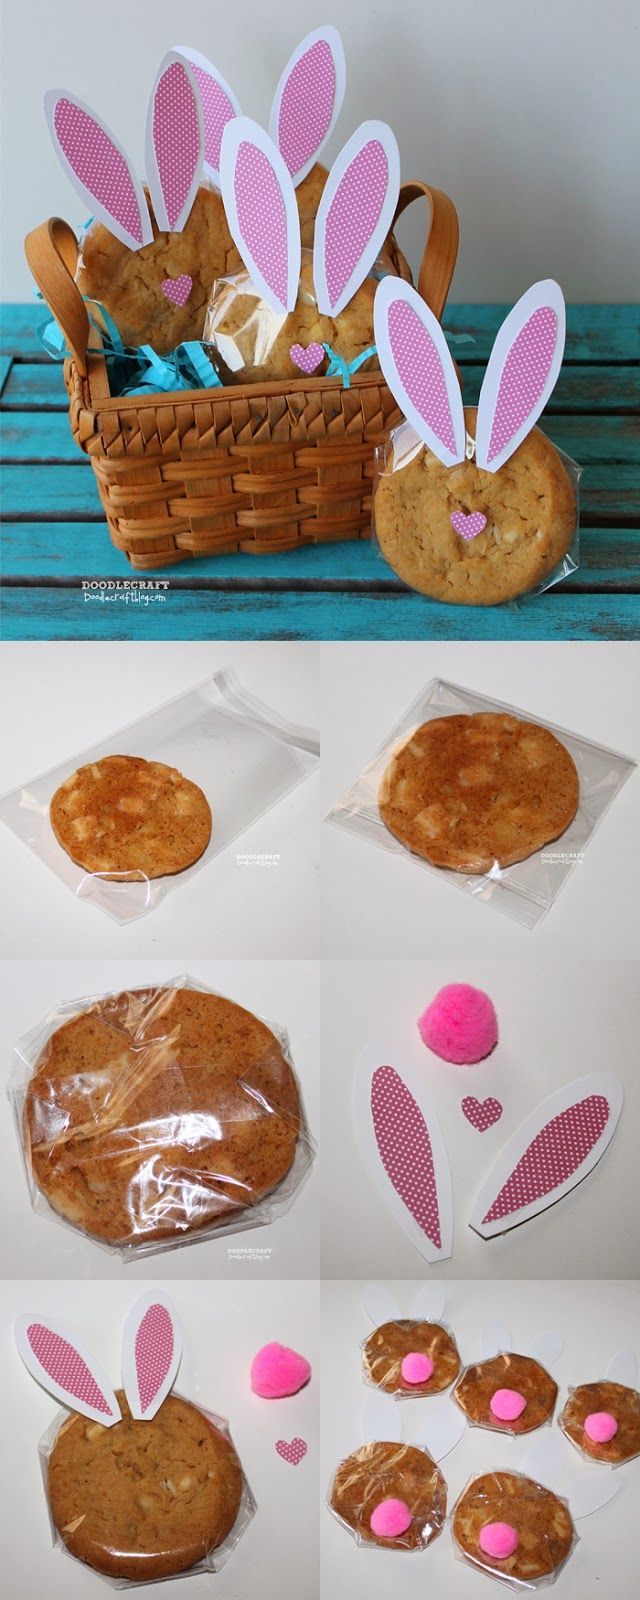 Cookies bunny ear cutouts a basket cellophane and a fuzzy tail cookies bunny ear cutouts a basket cellophane and a fuzzy tail and youre all set for easter thanks doodlecraft negle Choice Image